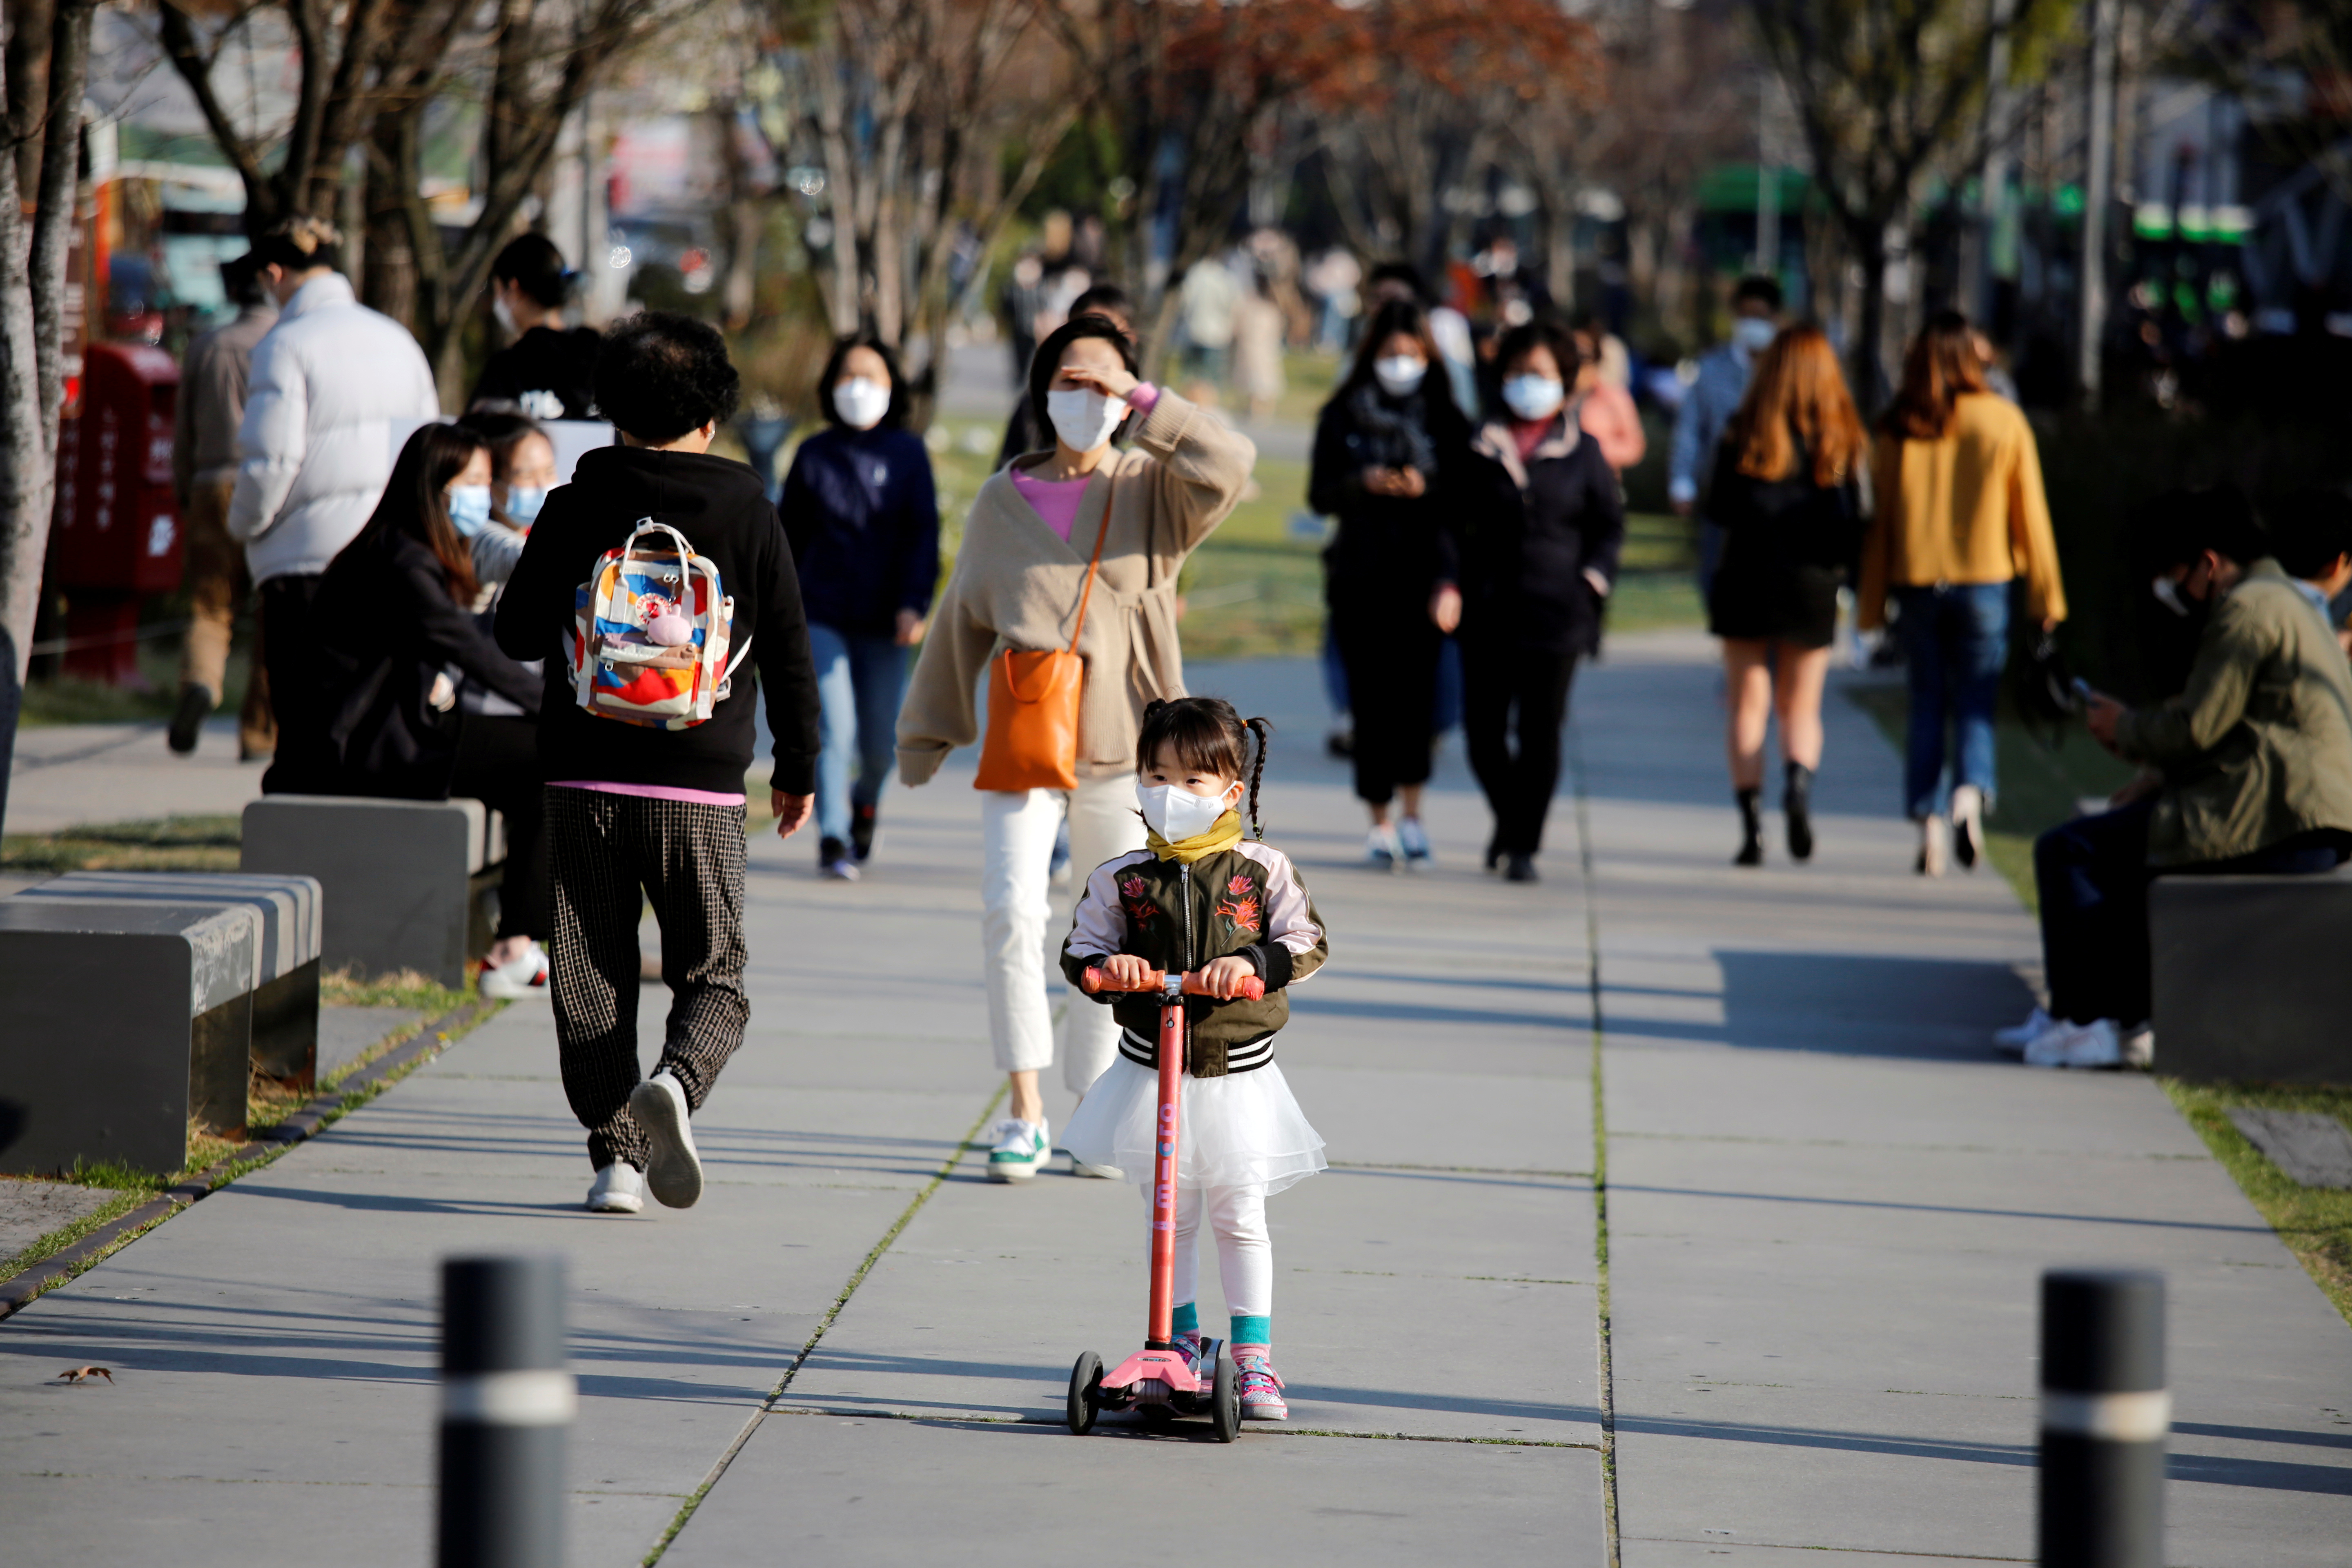 A girl wearing a protective face mask to prevent contracting the coronavirus disease (COVID-19) rides a toy kick scooter at a park in Seoul, South Korea, April 3, 2020.    REUTERS/Heo Ran